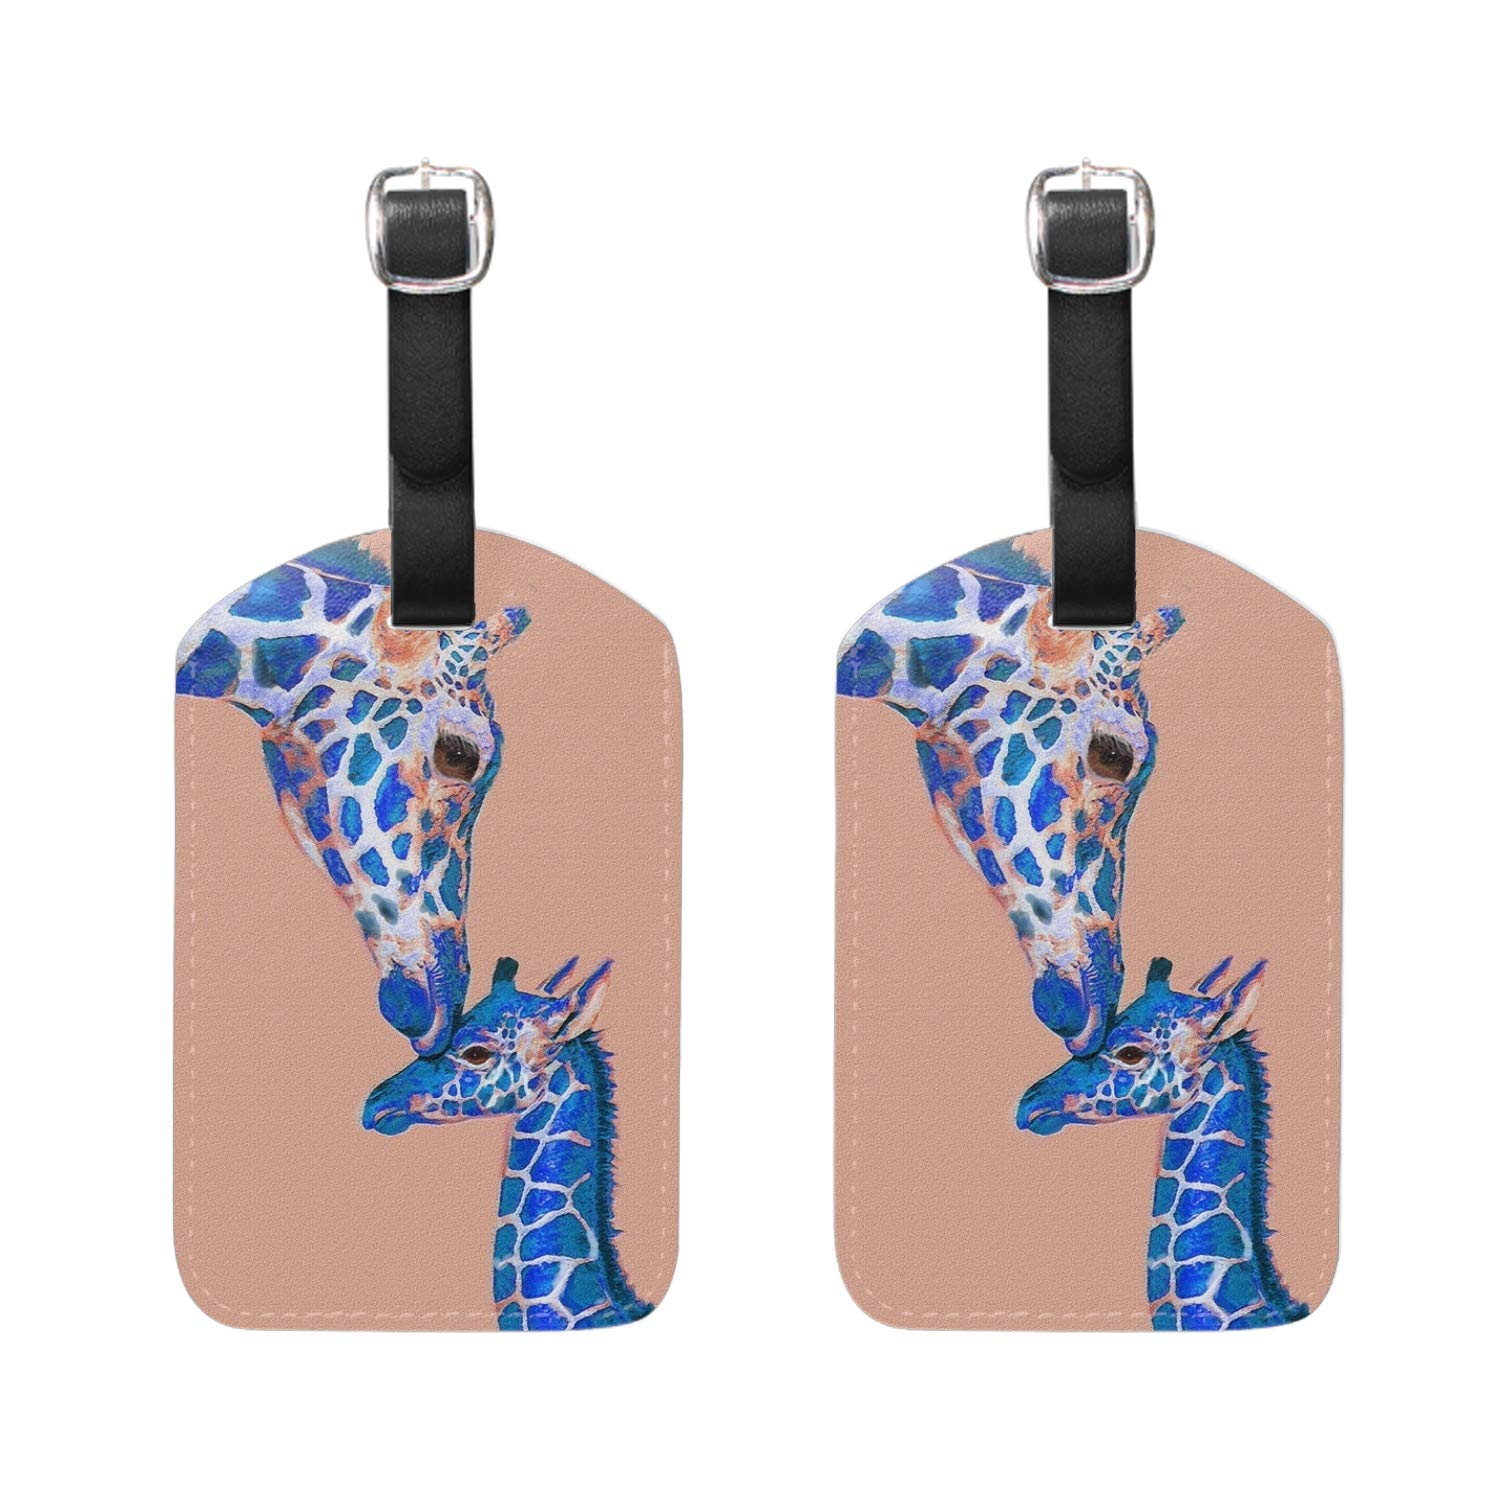 Fair Dragon Luggage Tag Travel ID Label Leather for Baggage Suitcase 2 Piece